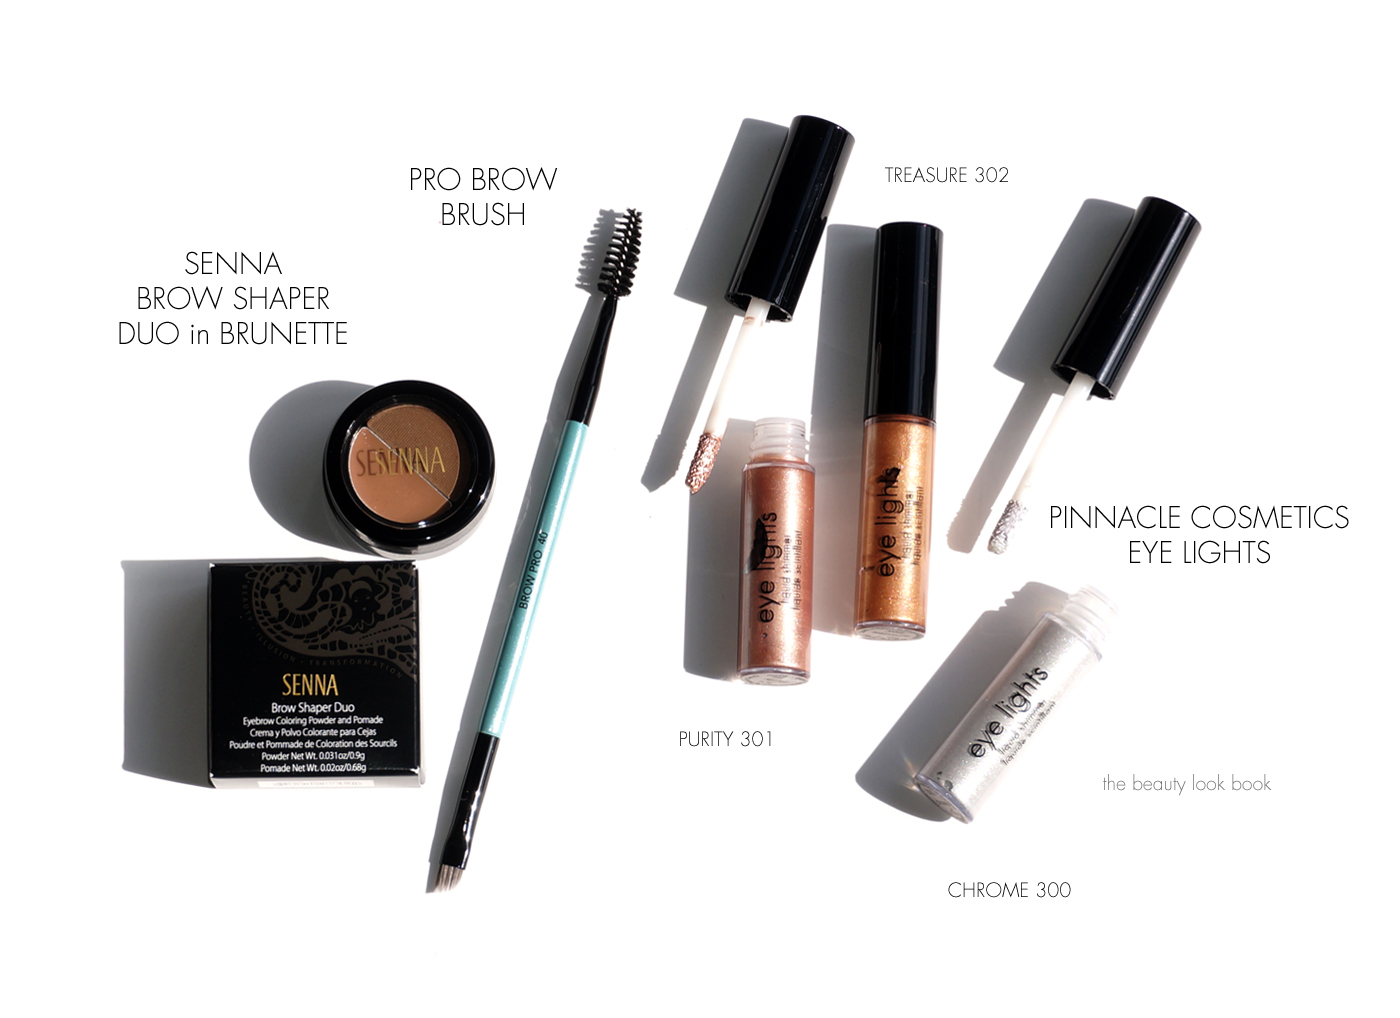 The Makeup Show La March 28 29th 2015 Event Preview The Beauty